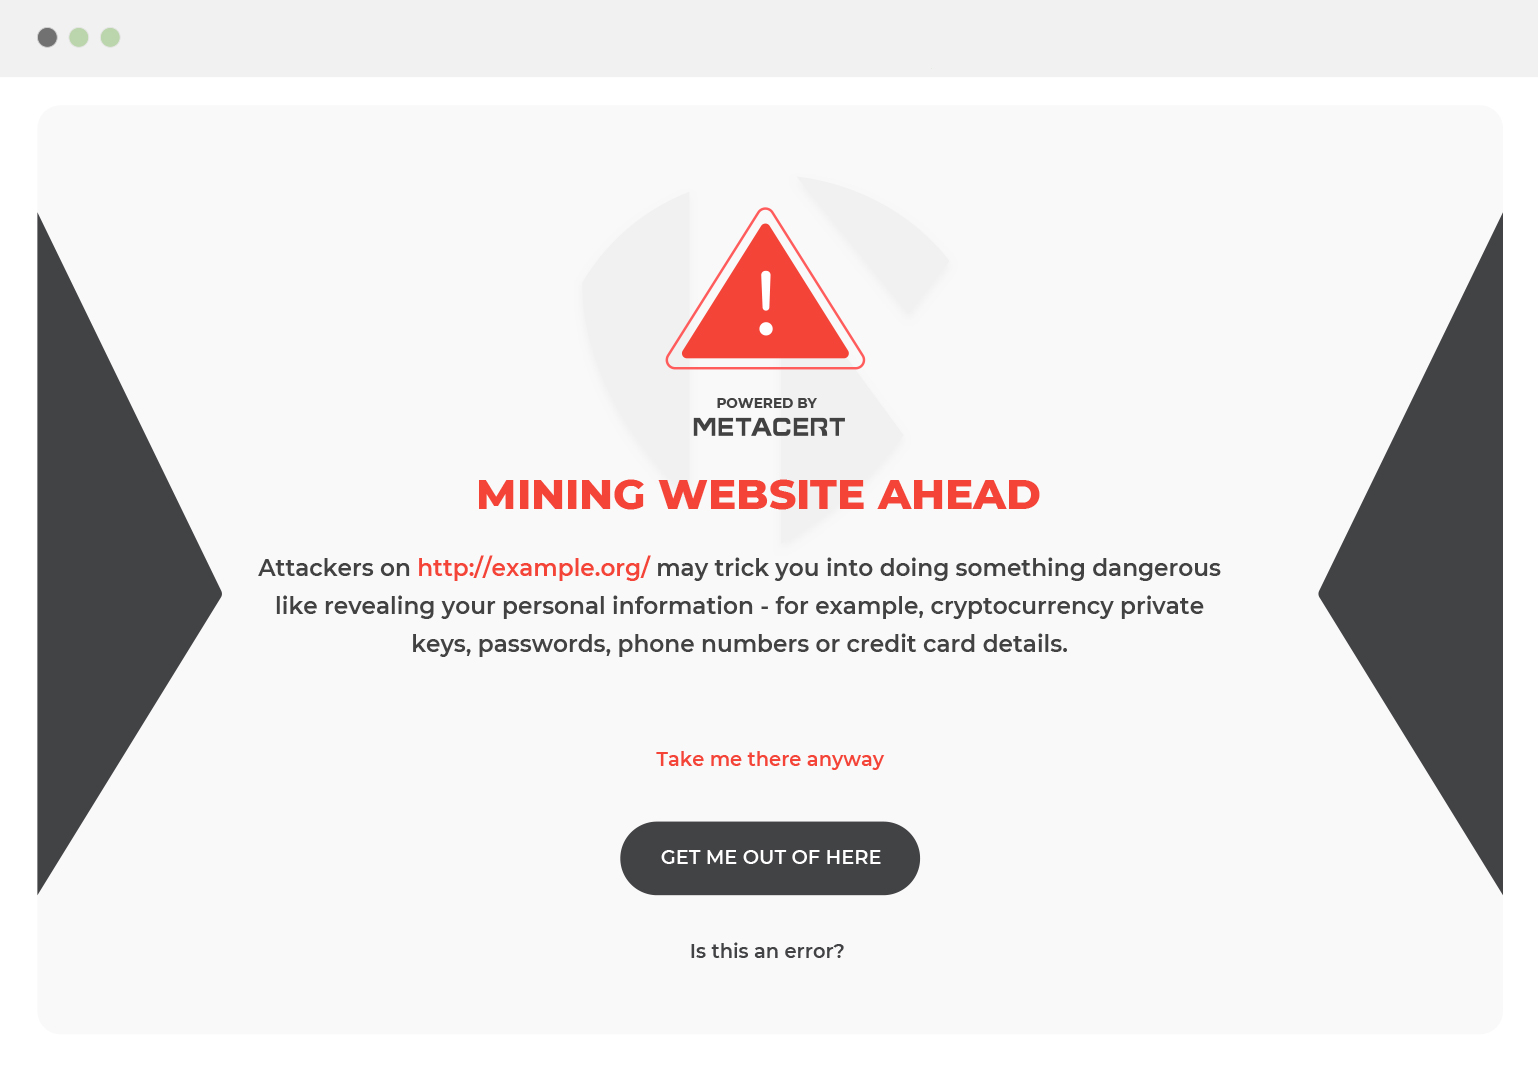 Warning mining website ahead